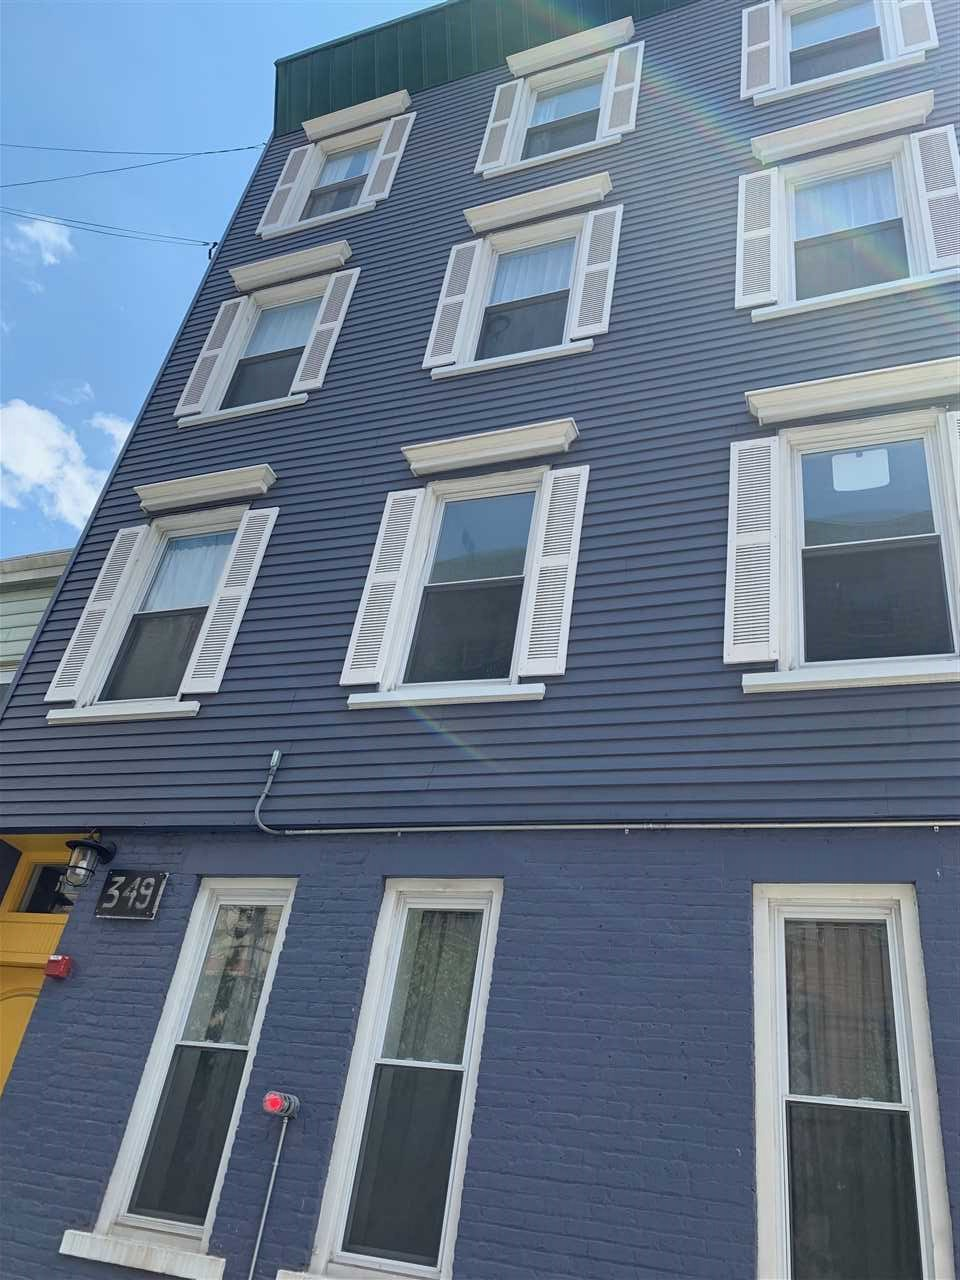 Completely gut renovated into a sleek, modern, and efficient style in 2017, this 25.25 ft wide 4 family, 4 story multifamily house has a trendy, upbeat and clean cut vibe. Located two blocks from Hamilton Park and SOHO Loft area, the neighborhood offers gorgeous famous restaurants, shopping including Newport Mall and NJ Path via Grove St. or Newport station. Full of trendy city action with tree-lined street. Minutes from Manhattan and highways to everywhere. Each unit is airy and open, equipped with a washer dryer, stainless steel appliances, central heat and A/C, and hardwood floors. The building has a sprinkler system and connected to the fire department. All units are currently fully rented.